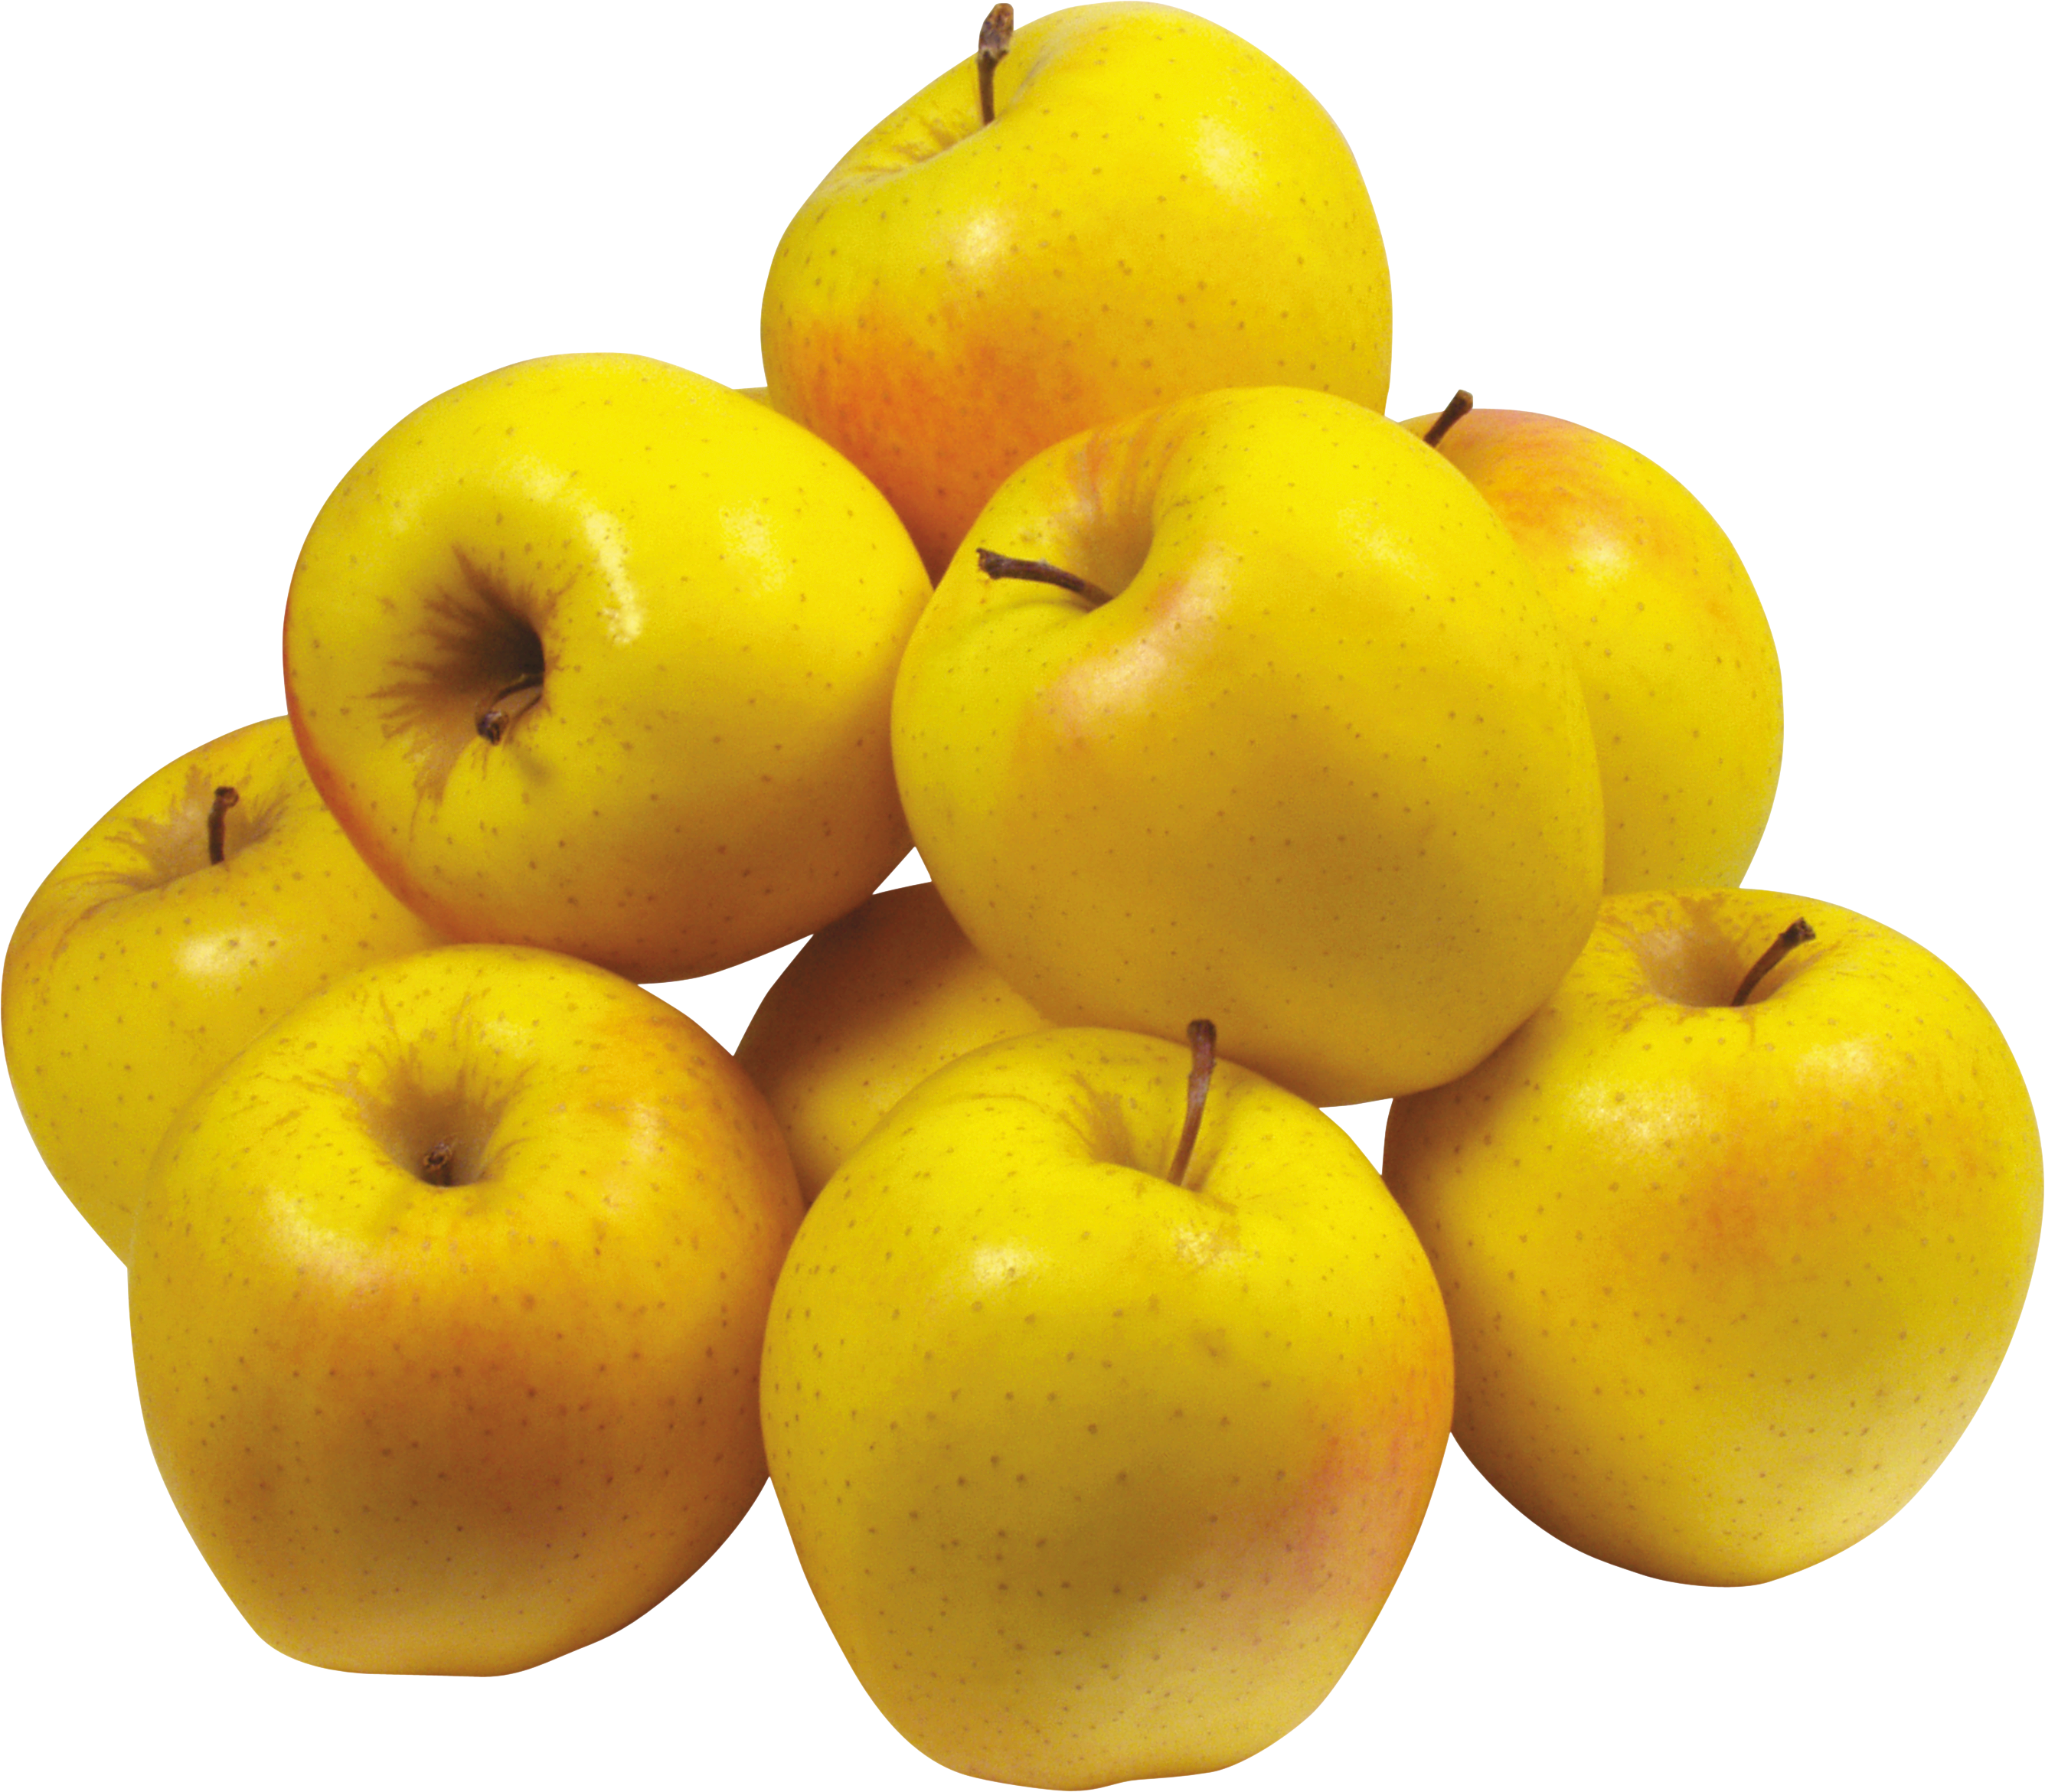 Many Yellow Apples